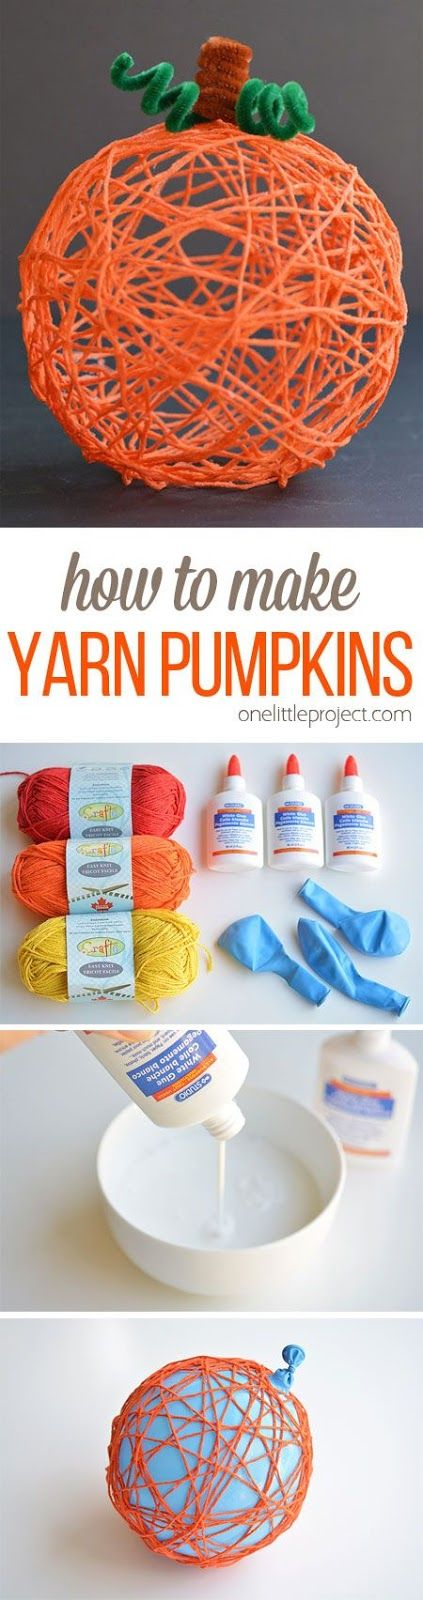 How to Make Yarn Pumpkins Using Balloons Decoration  events